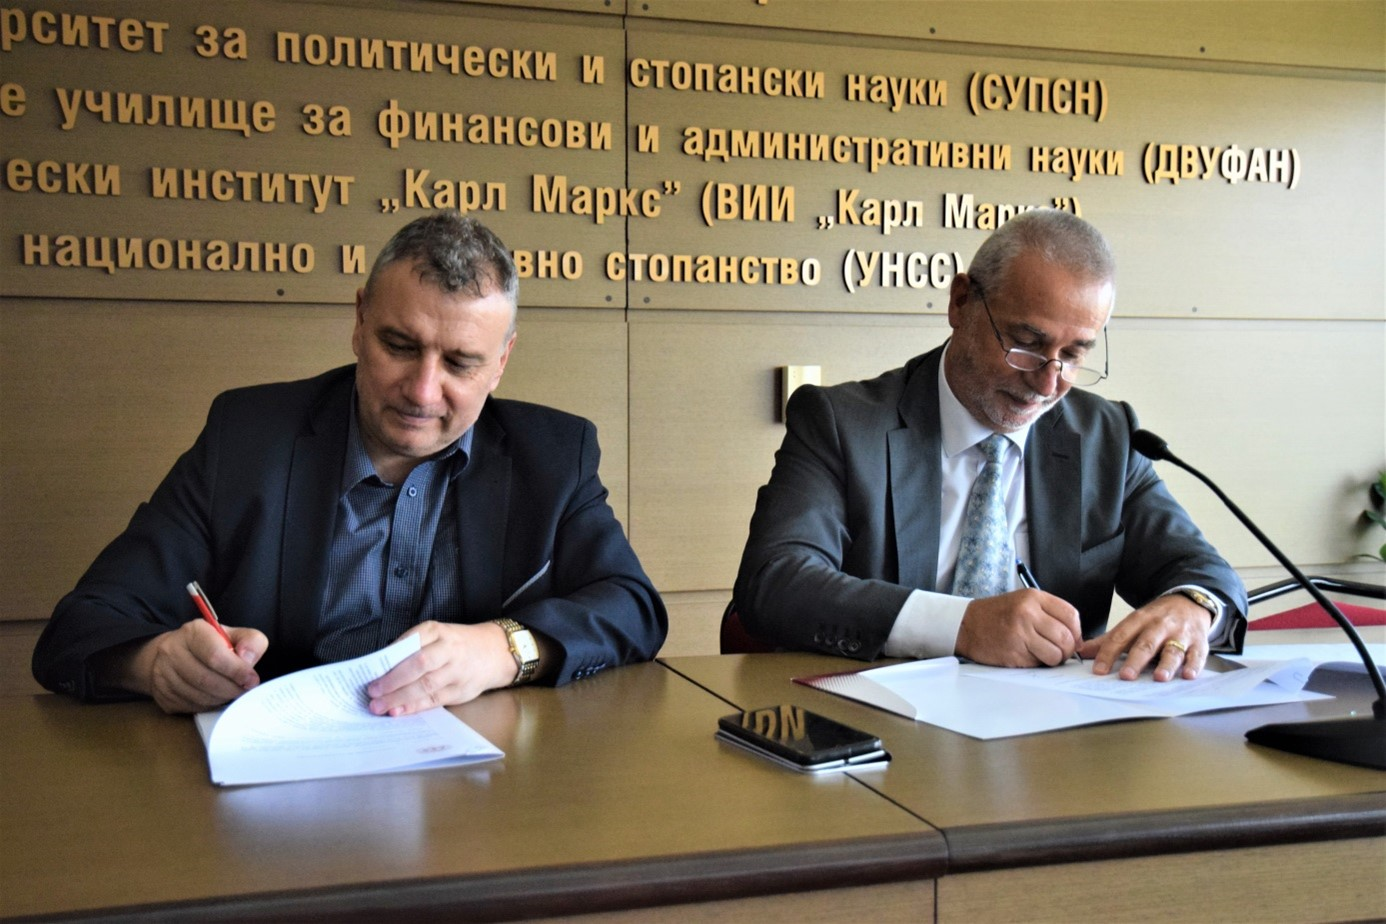 The Rector of UNWE Prof. Dr. Dimitar Dimitrov and Mr. Vladislav Mihov, Chairman of the Management Board of the Japanese-Bulgarian Business Association signed a cooperation agreement.